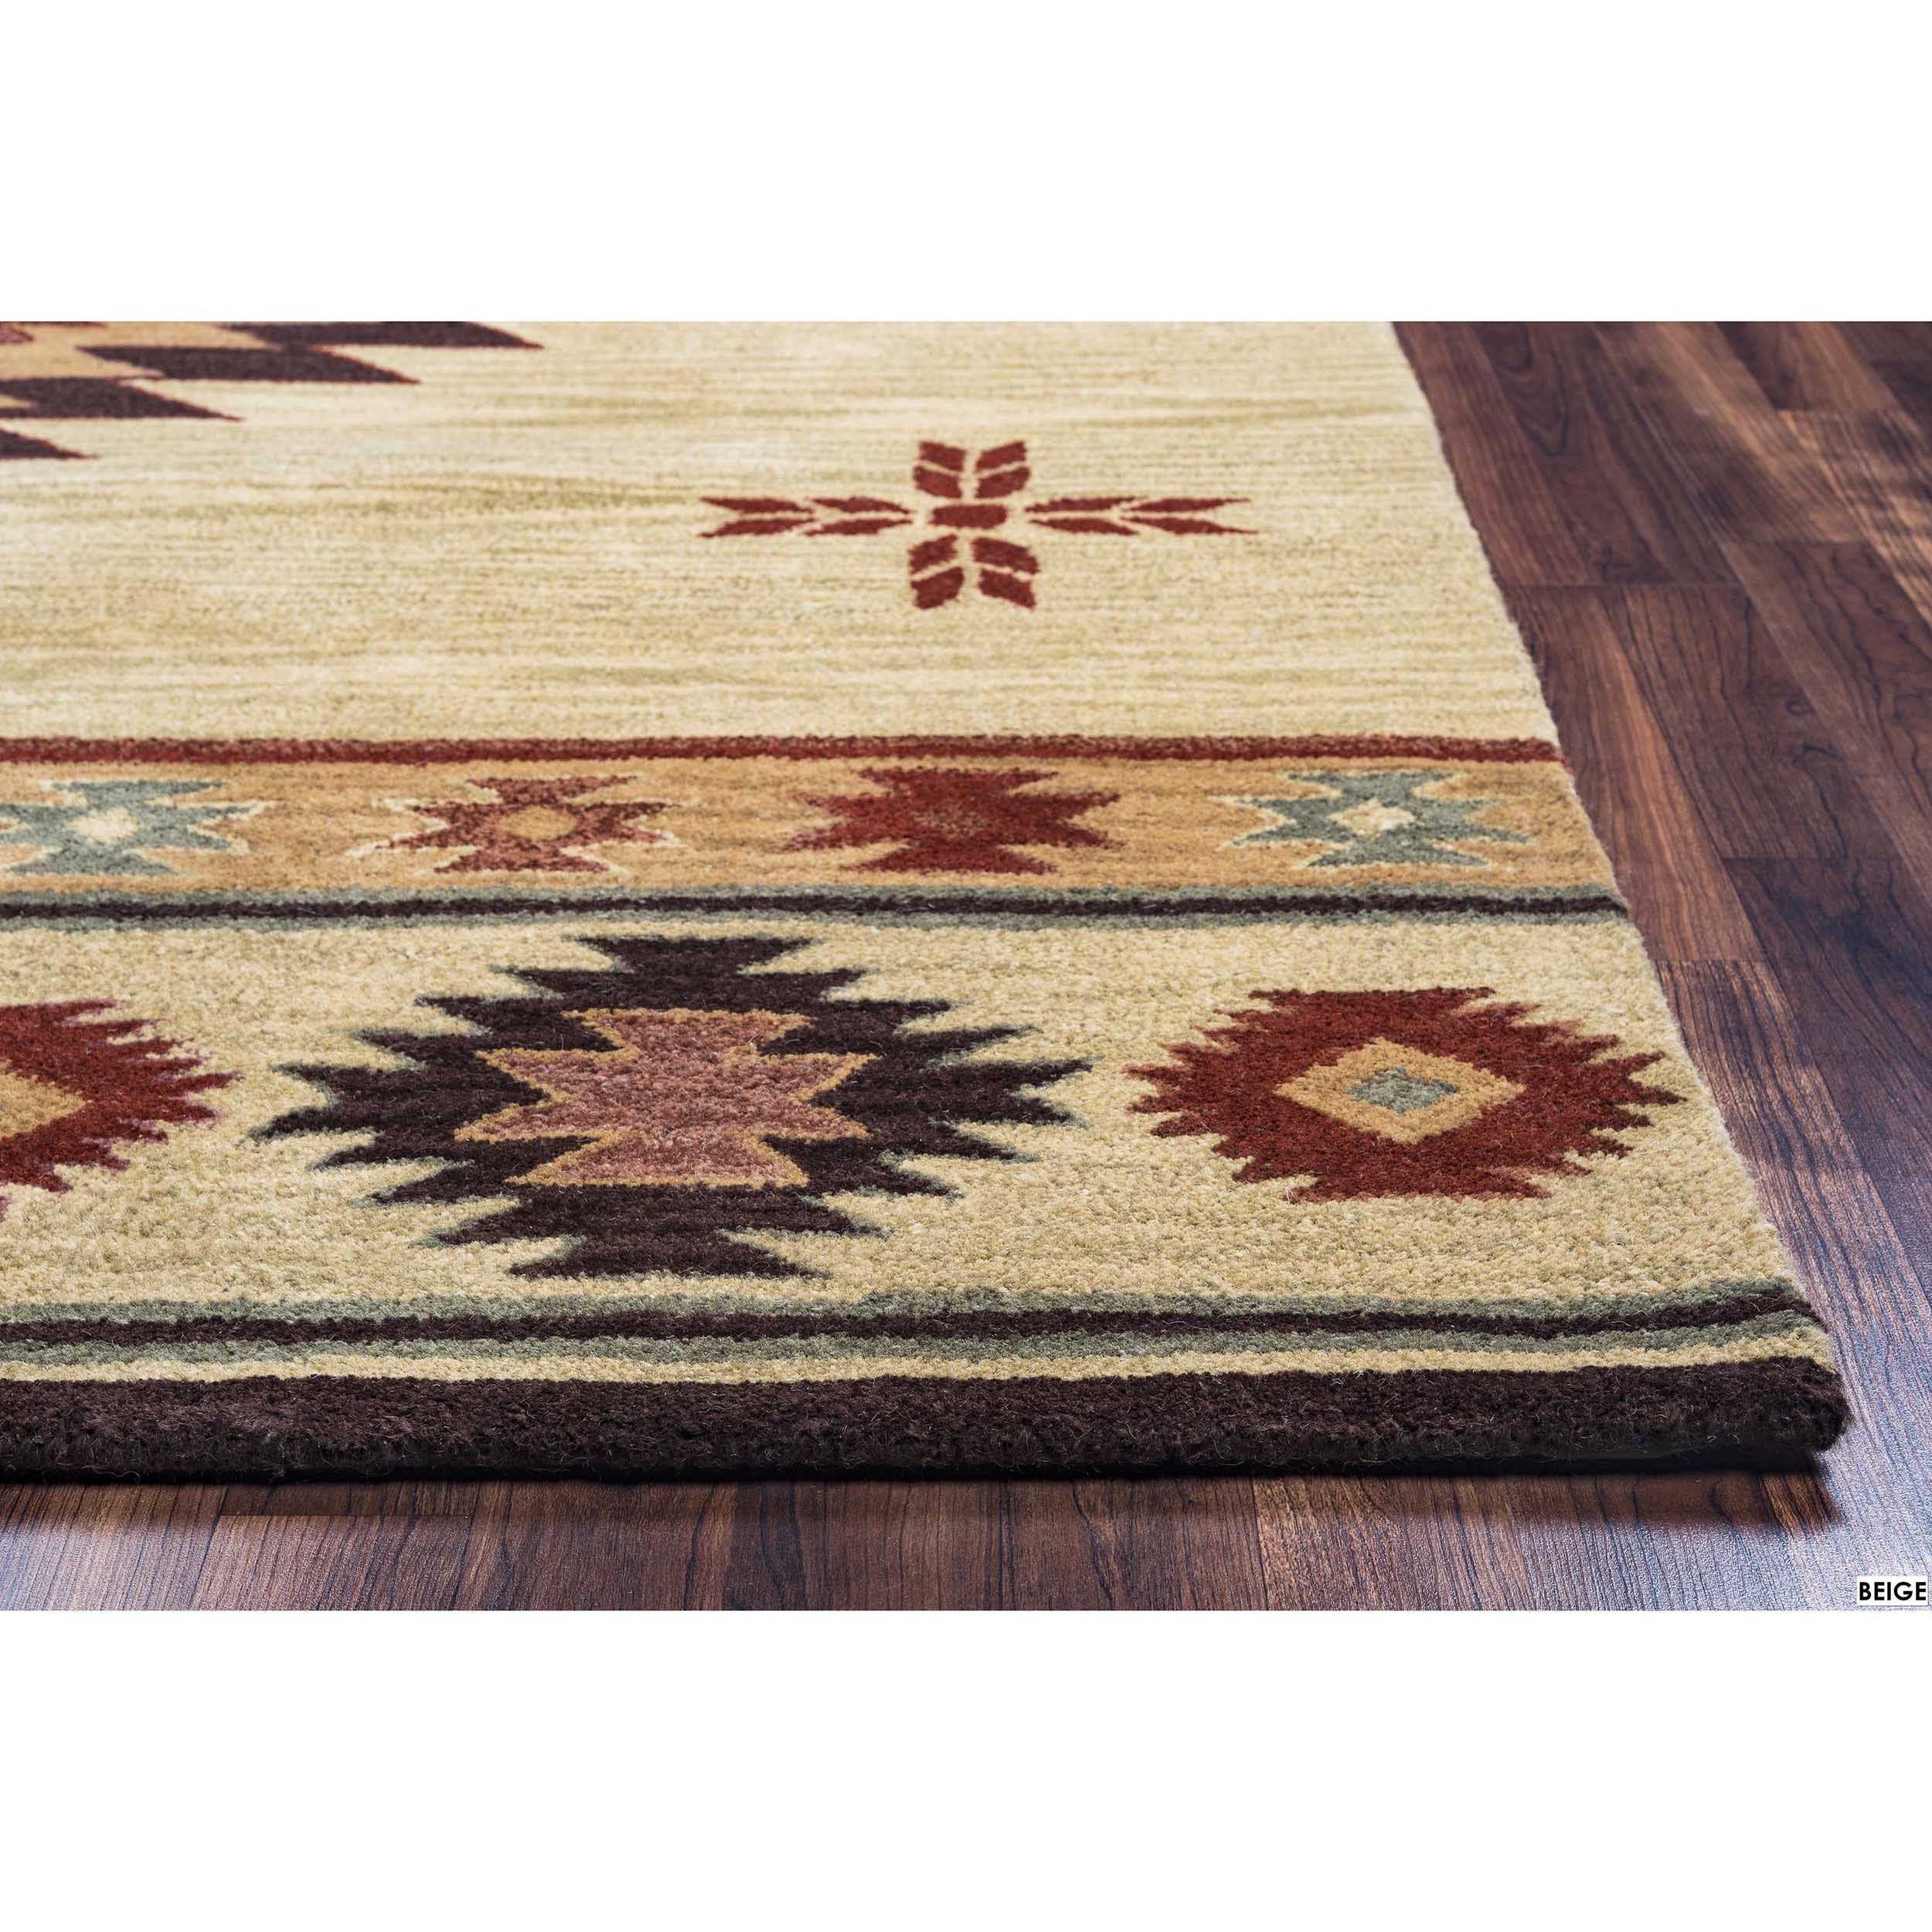 Rizzy Home Southwest Collection Hand Tufted Geometric Wool Red Green Beige Rug 9 X 12 Free Shipping Today 17469995